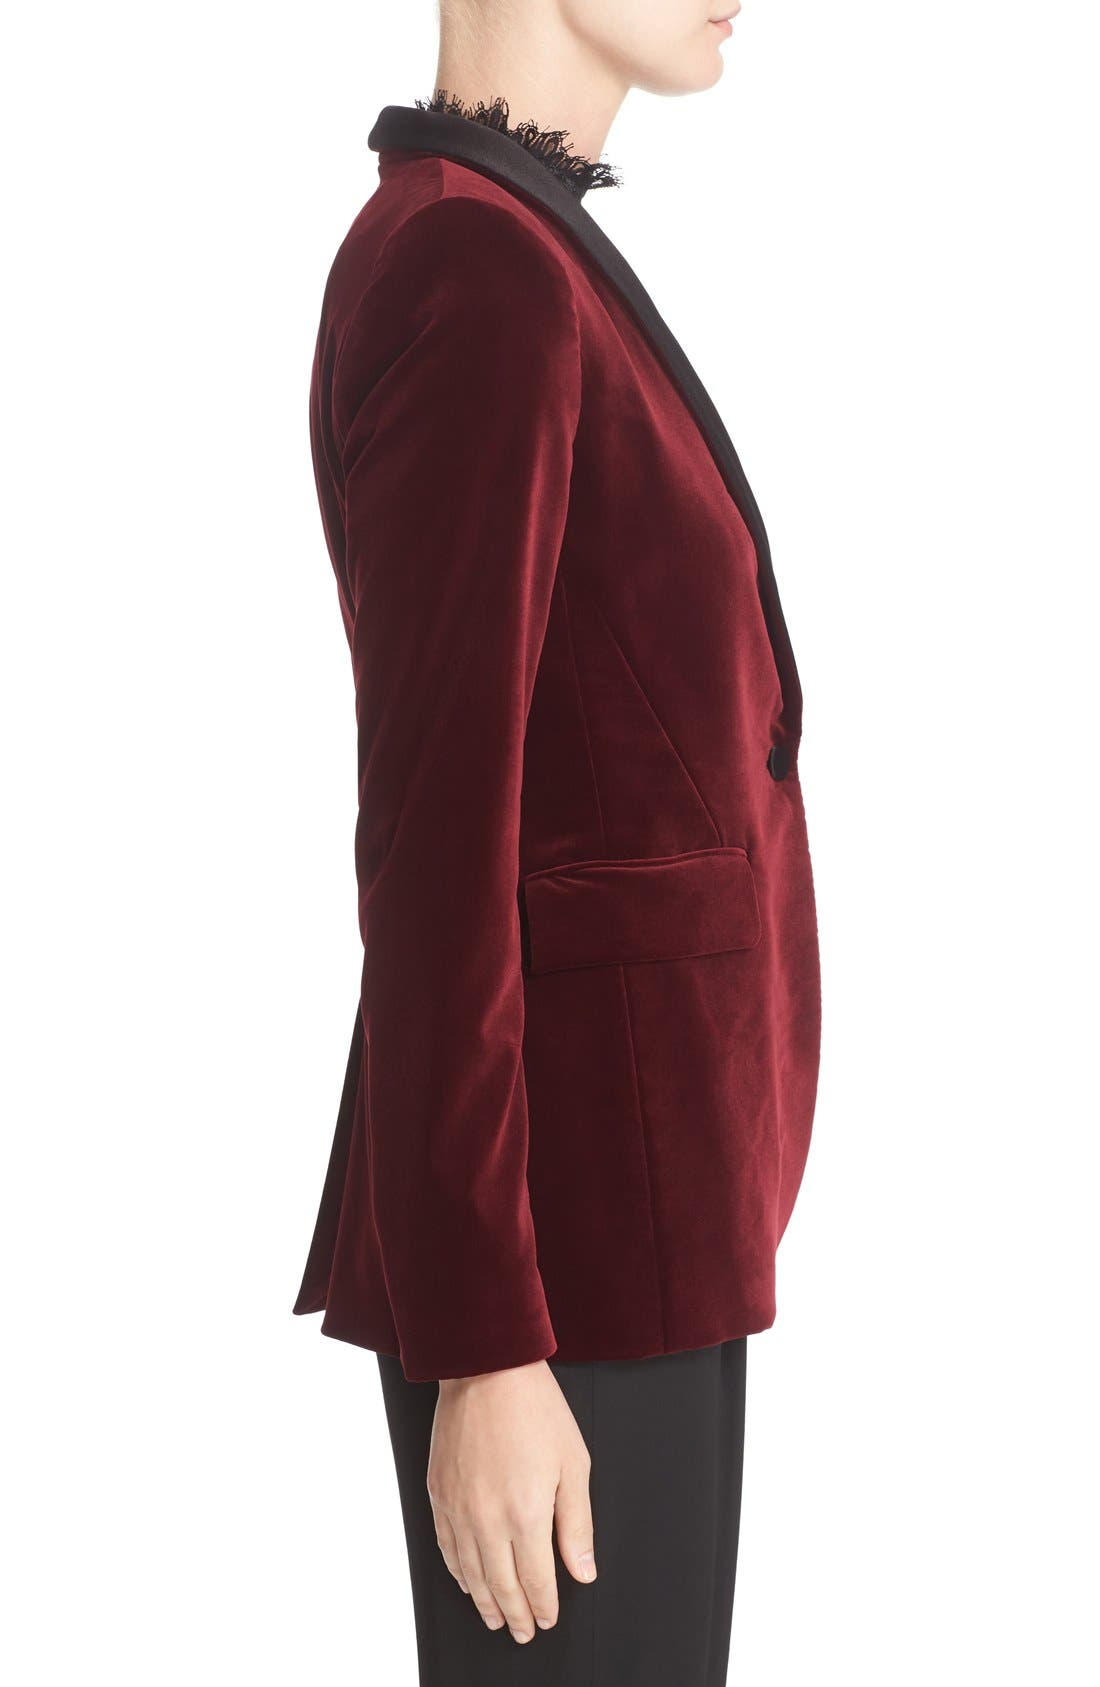 'Macey' Satin Lapel Velvet One-Button Blazer,                             Alternate thumbnail 4, color,                             Bordeaux/ Black